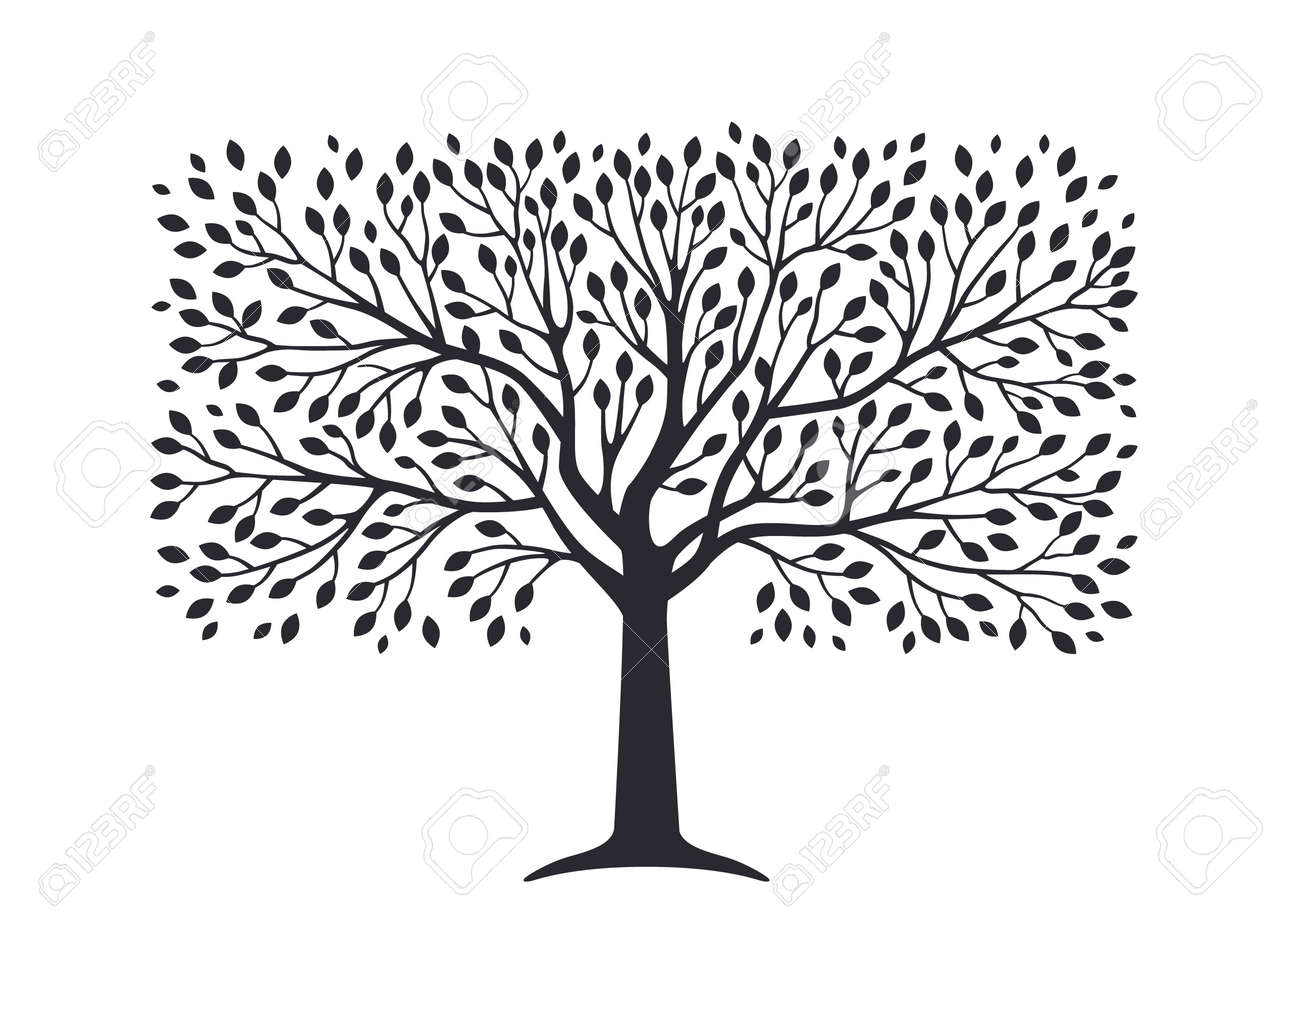 Olive tree silhouette isolated on white background. Vector illustration. Premium quality extra virgin oil, nature logo - 159466415